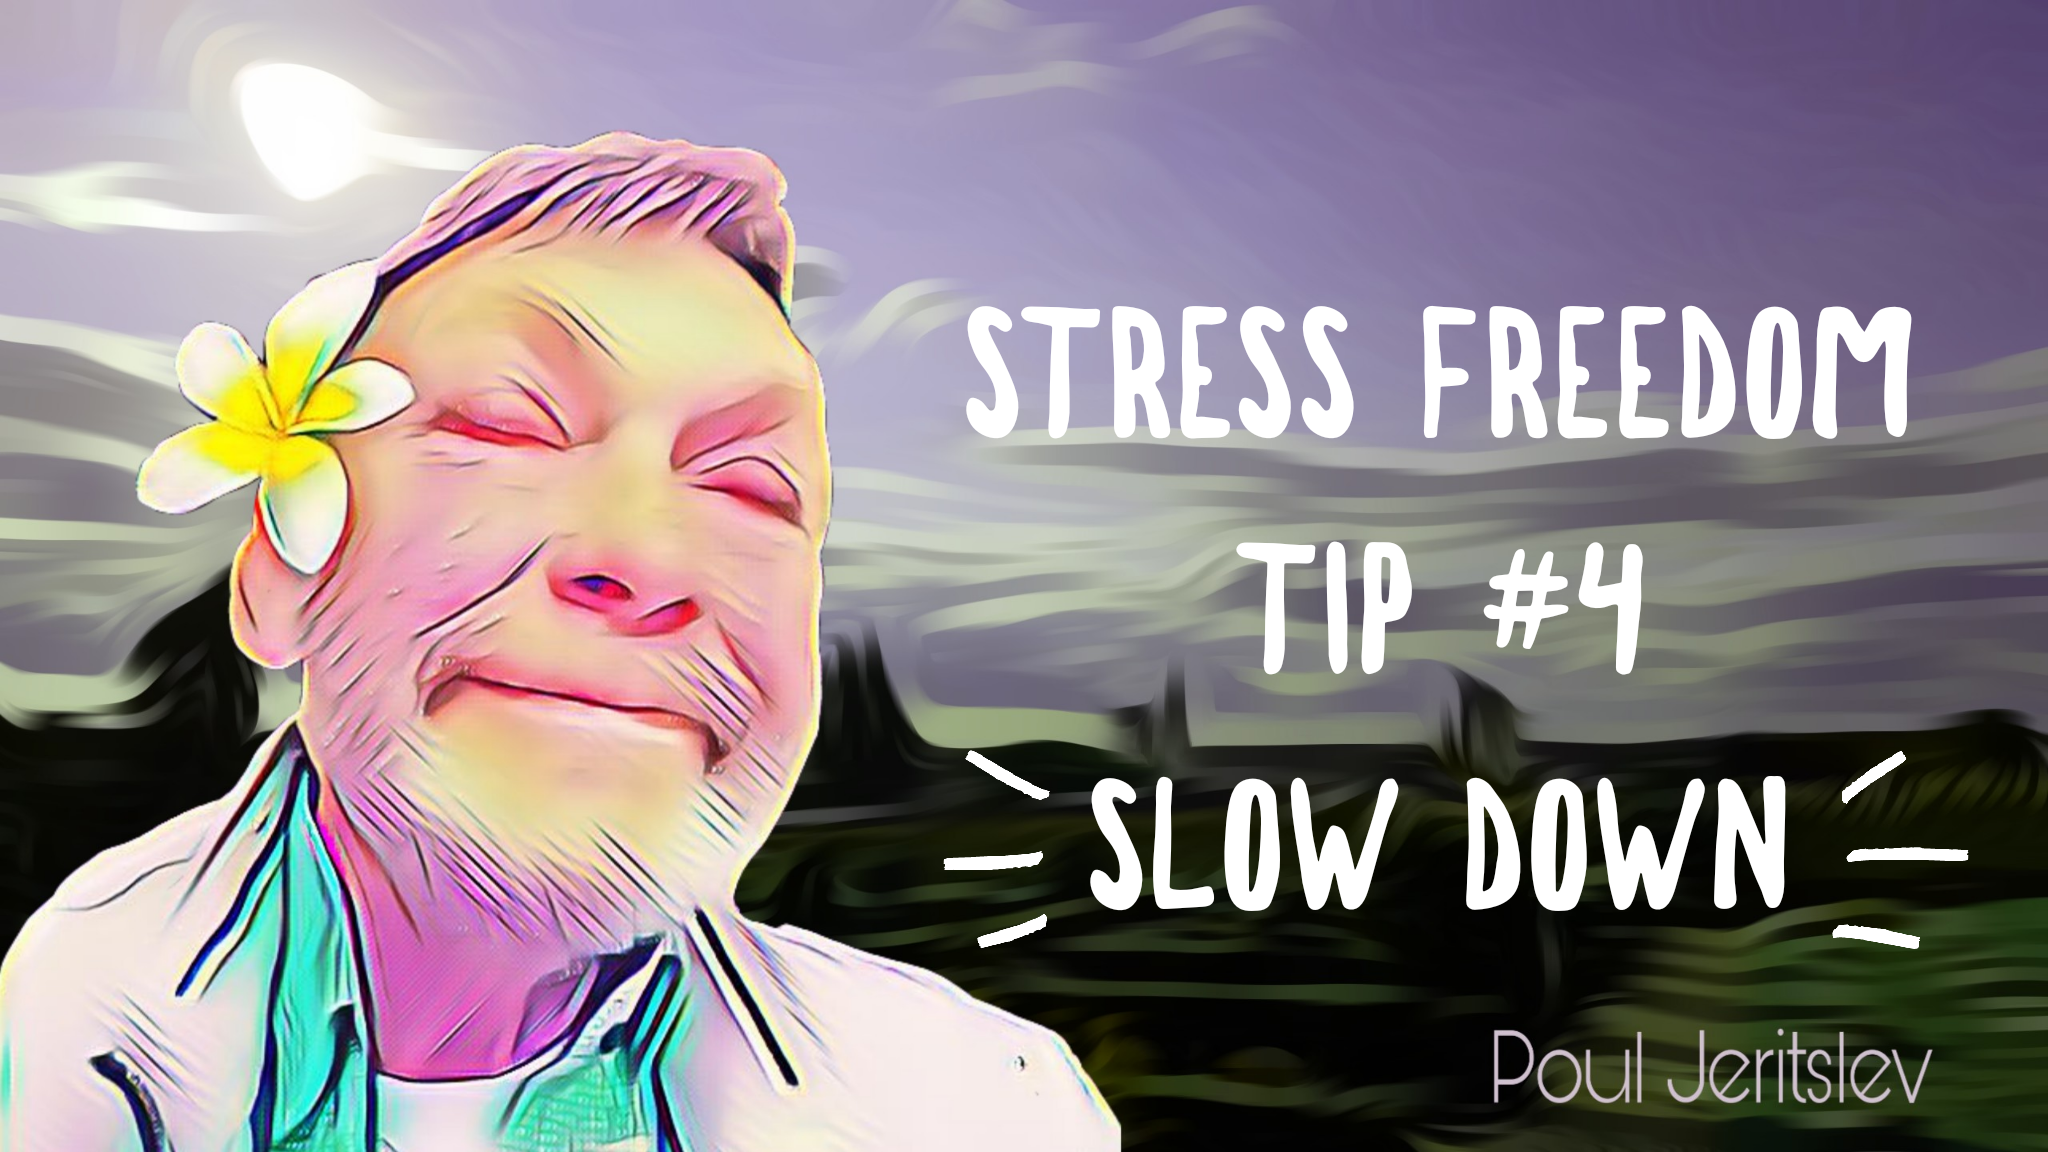 Stress Freedom TIP #4